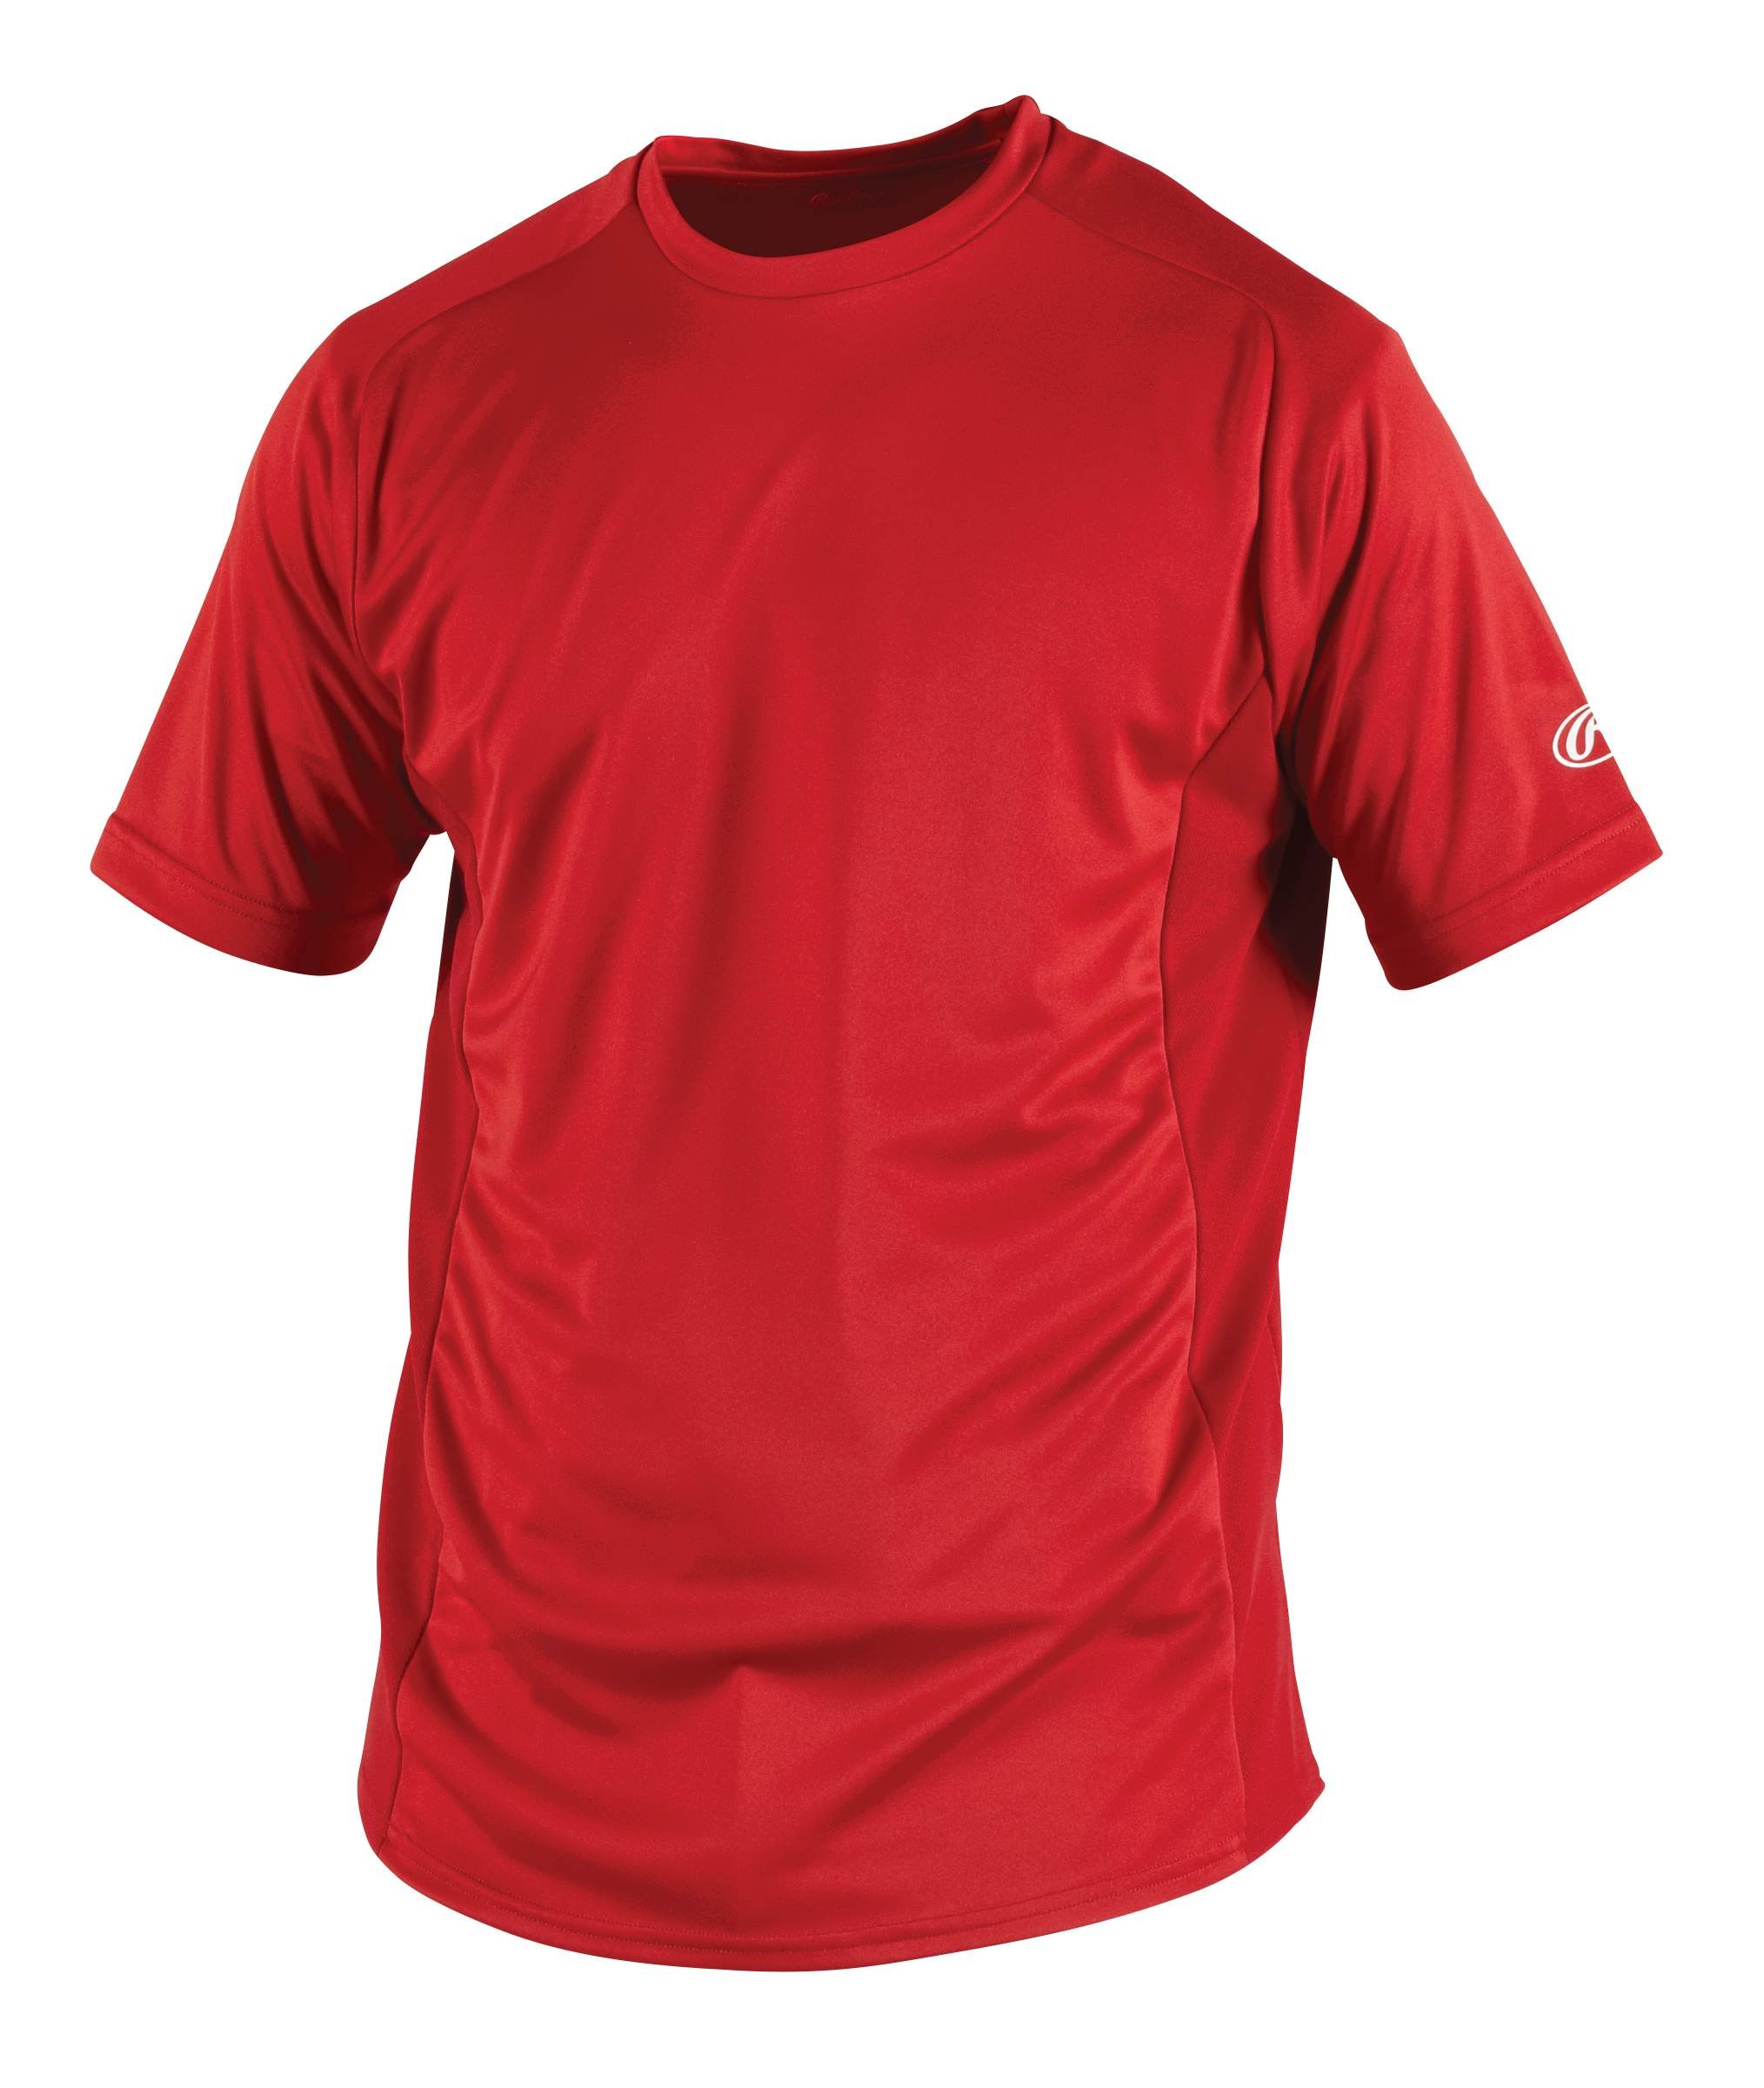 Rawlings Men's Short Sleeve Baselayer